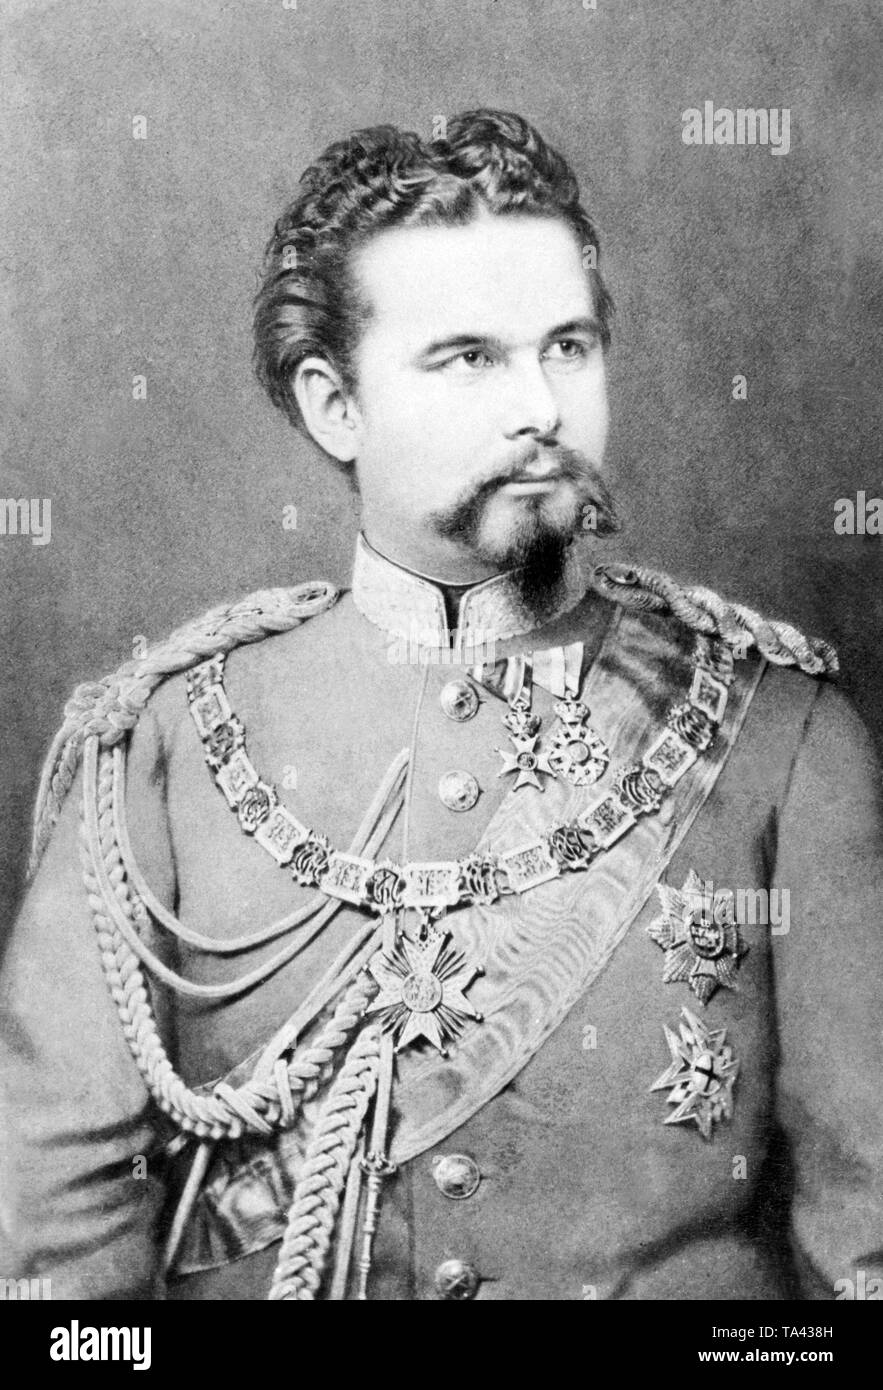 This photograph from 1875 shows King Ludwig II of Bavaria. King Ludwig II carries the Order of St. Hubert, the house order of the Wittelsbach and one of the four royal Bavarian orders.  After his deposition on June 9, 1886, his uncle Luitpold took over, as Prinzeregent, the governmental affairs of the Bavarian kingdom. Due to his activity as builder of many well-known Bavarian castles, King Ludwig II received the nickname 'Fairy Tale King'. - Stock Image